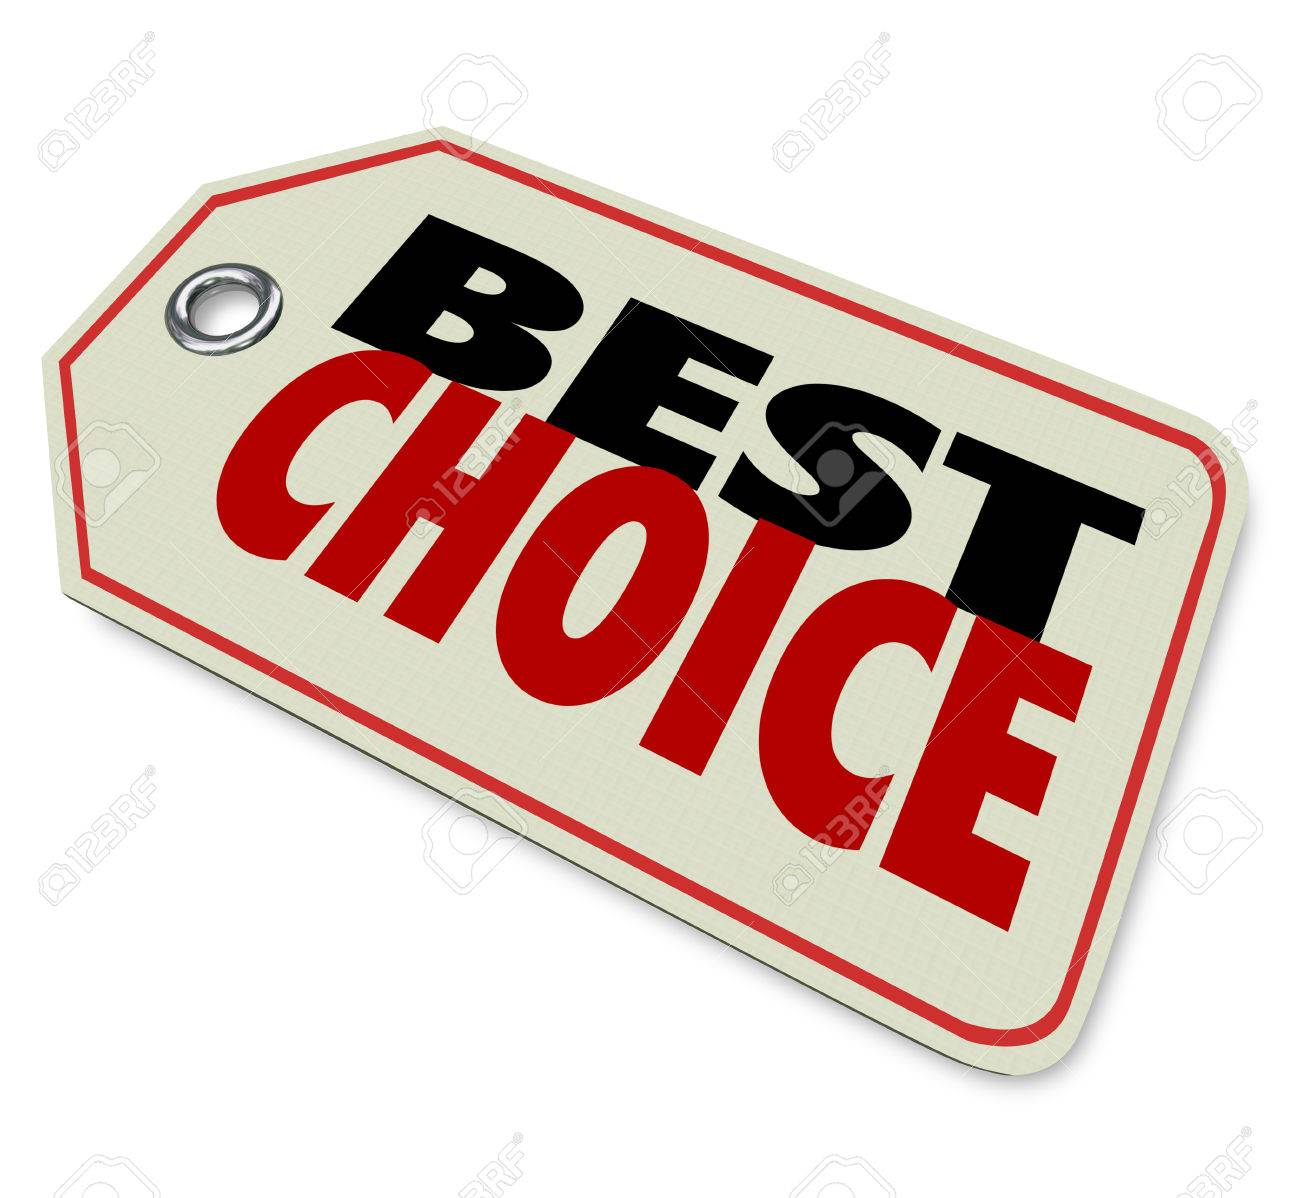 best choice words on a price tag to illustrate good or great best choice words on a price tag to illustrate good or great product recommendation review